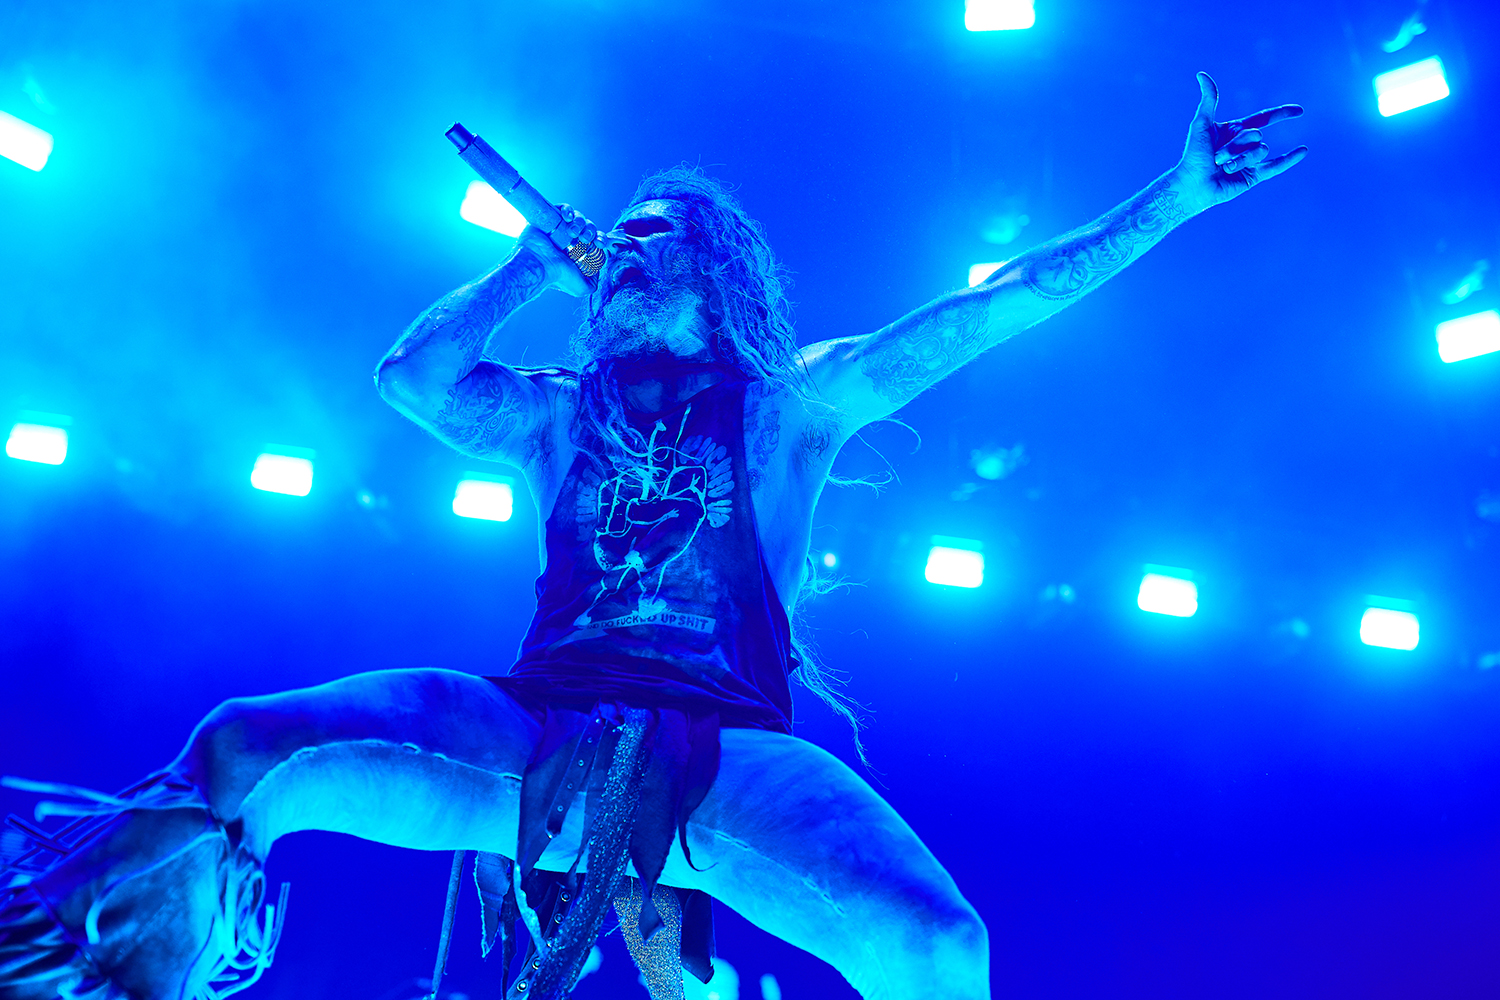 Rob Zombie performs during a concert as part of the Twins of Evil Tour at the US Cellular Center in Cedar Rapids on Saturday, Aug. 10, 2019.